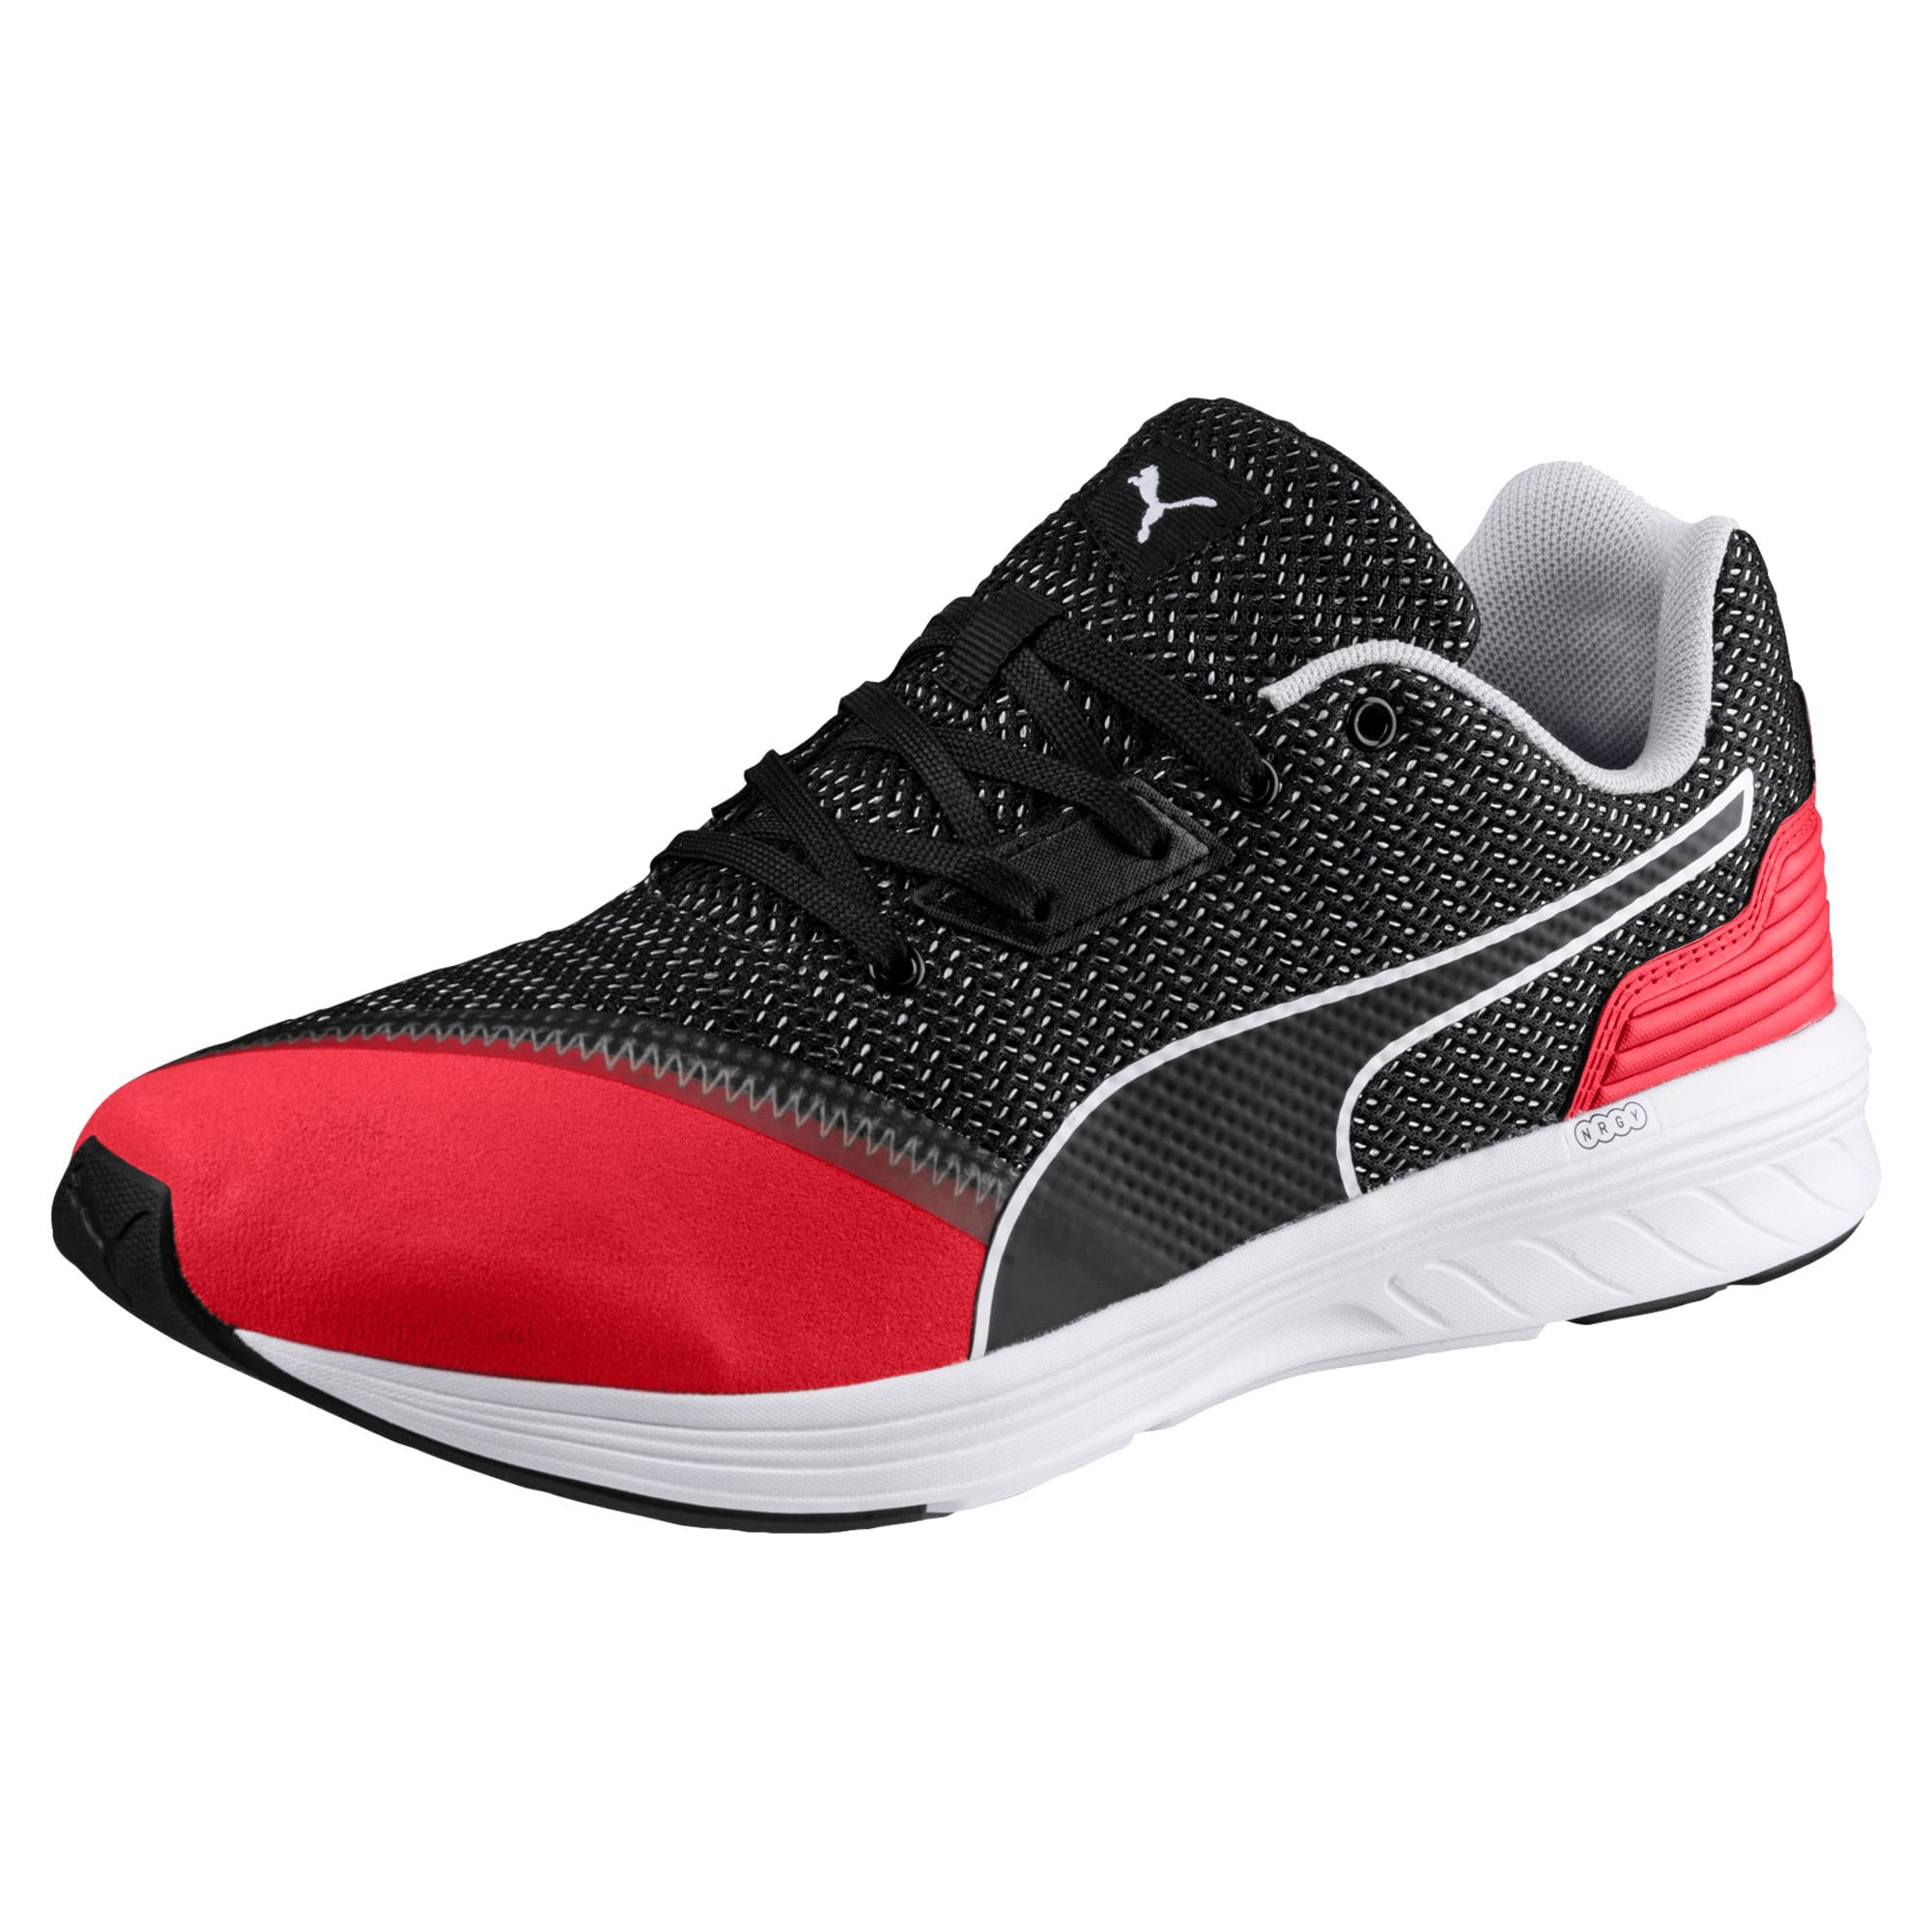 Thumbnail 1 of NRGY Resurge Puma Black-Puma White, Puma Blk-Ribbon Rd-Pma Wht, medium-IND